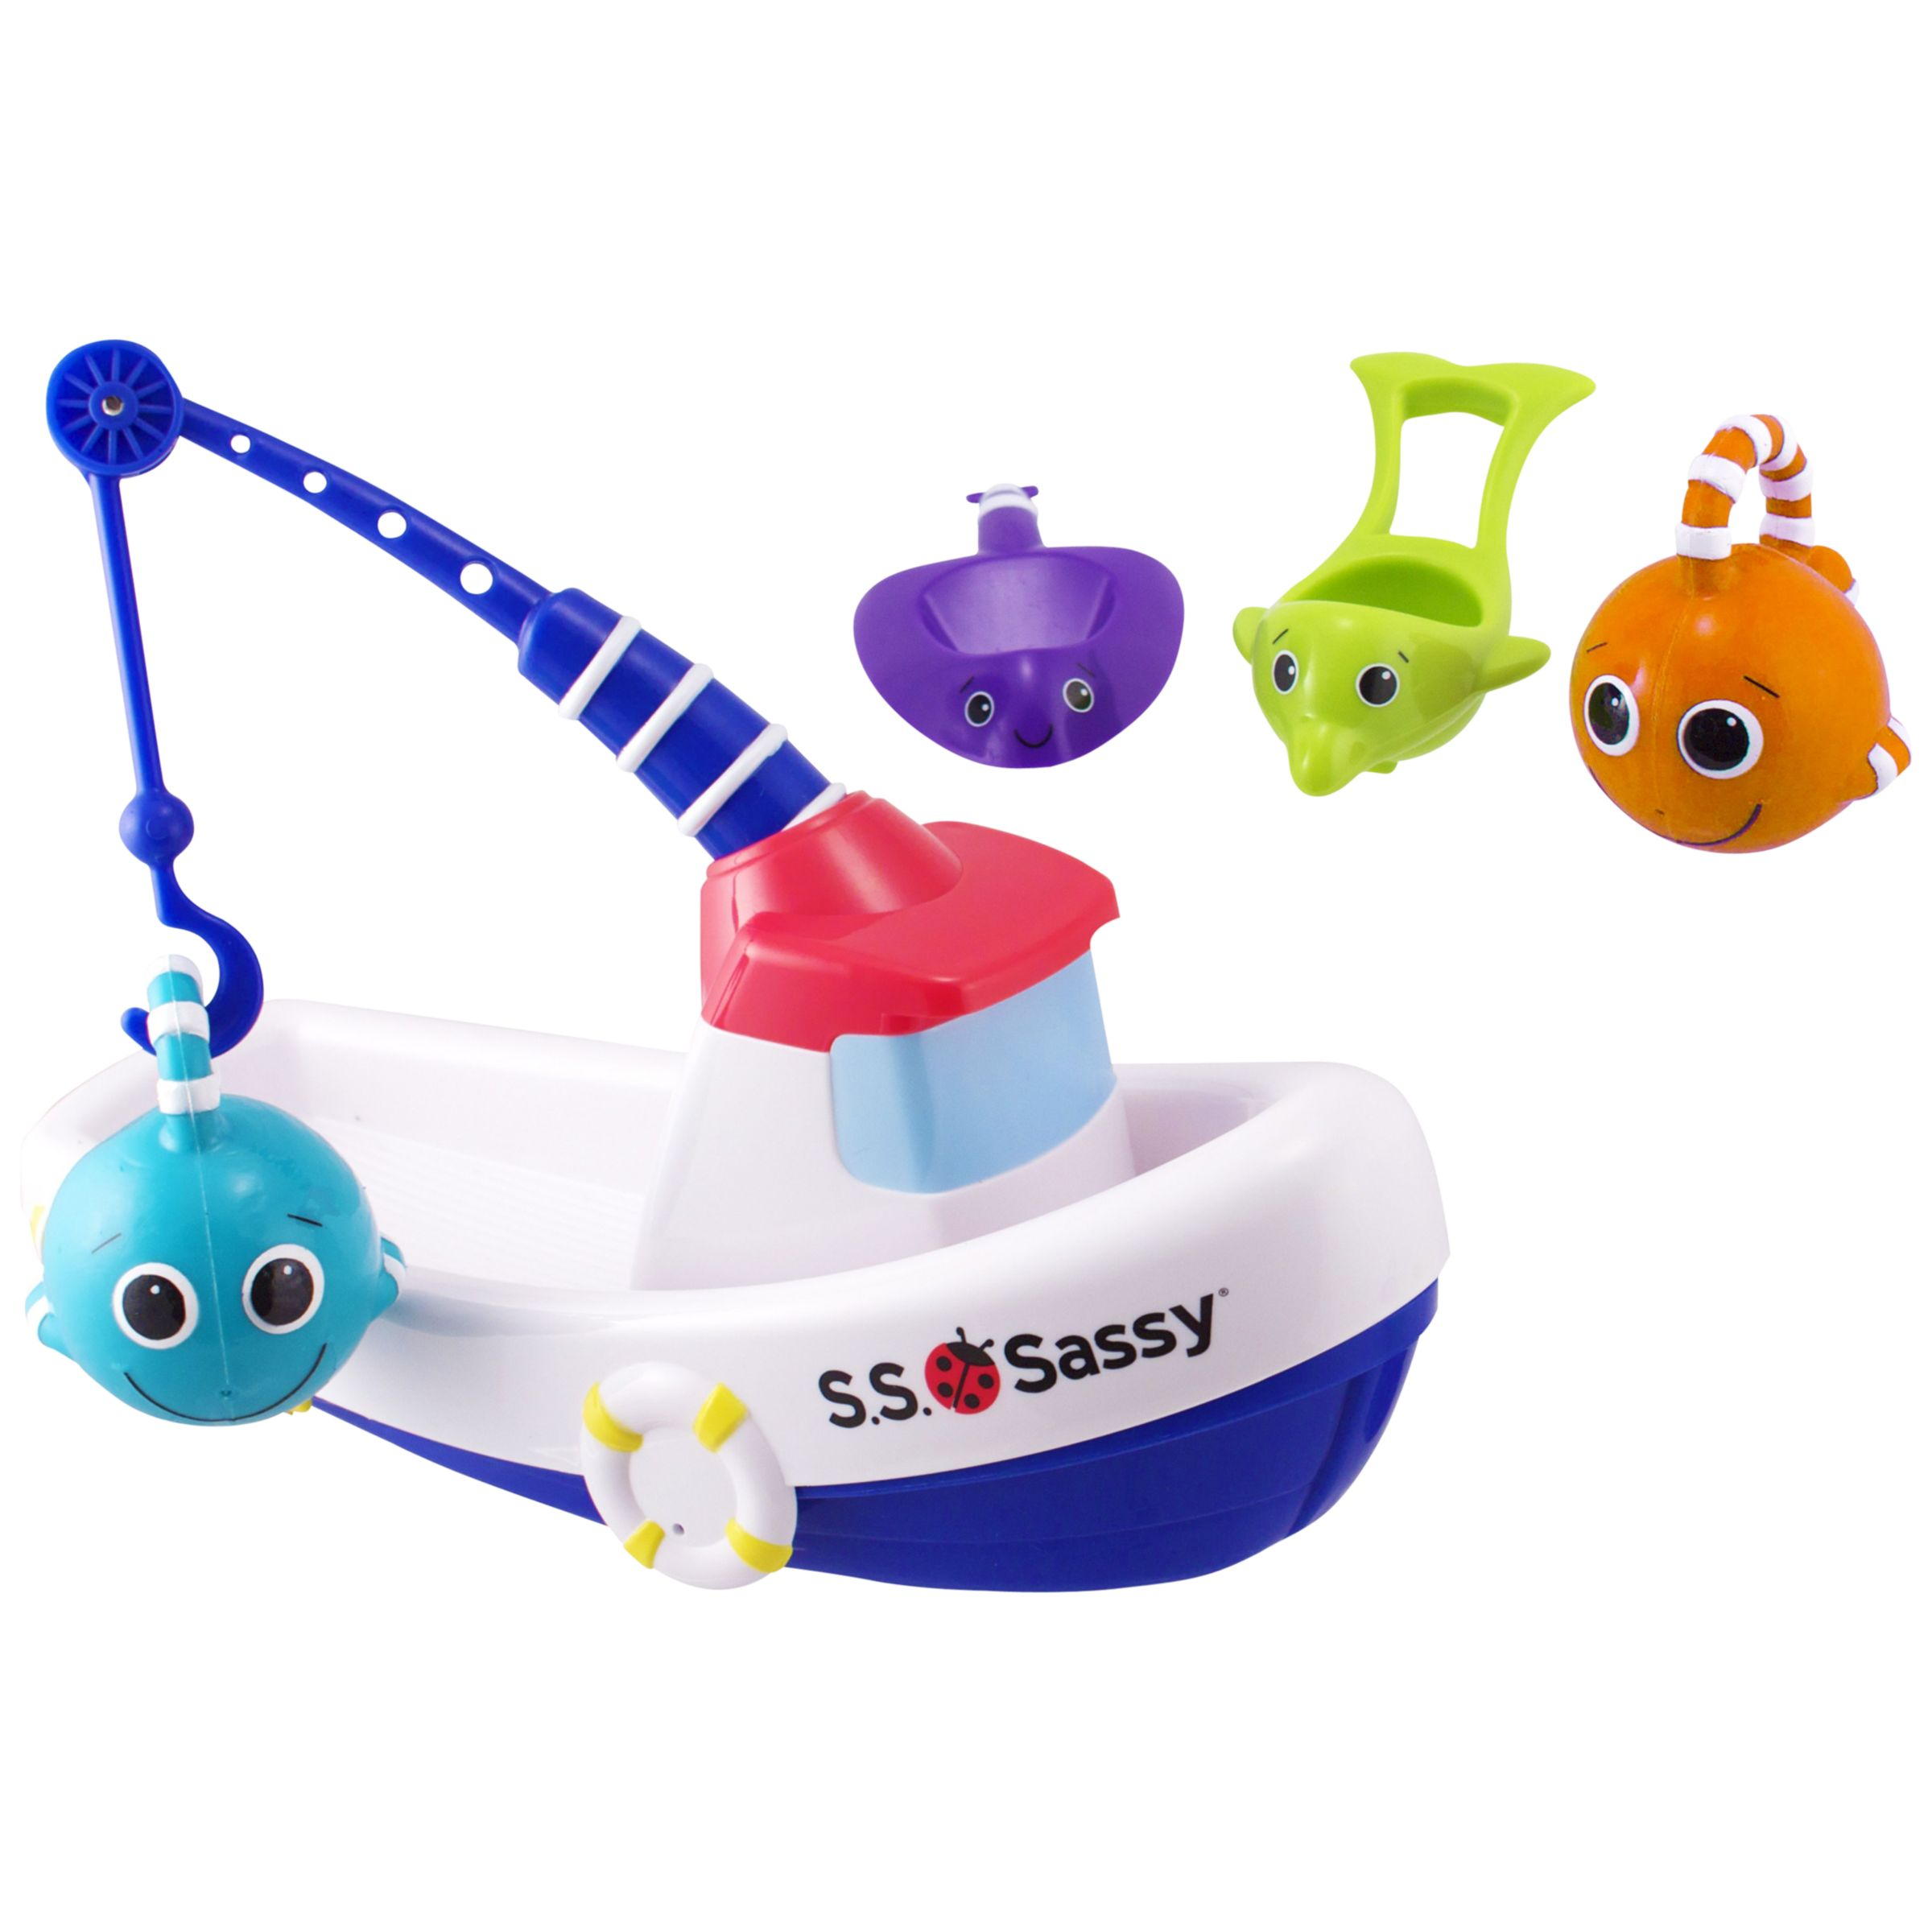 Sassy Fishing Boat Bath Toy